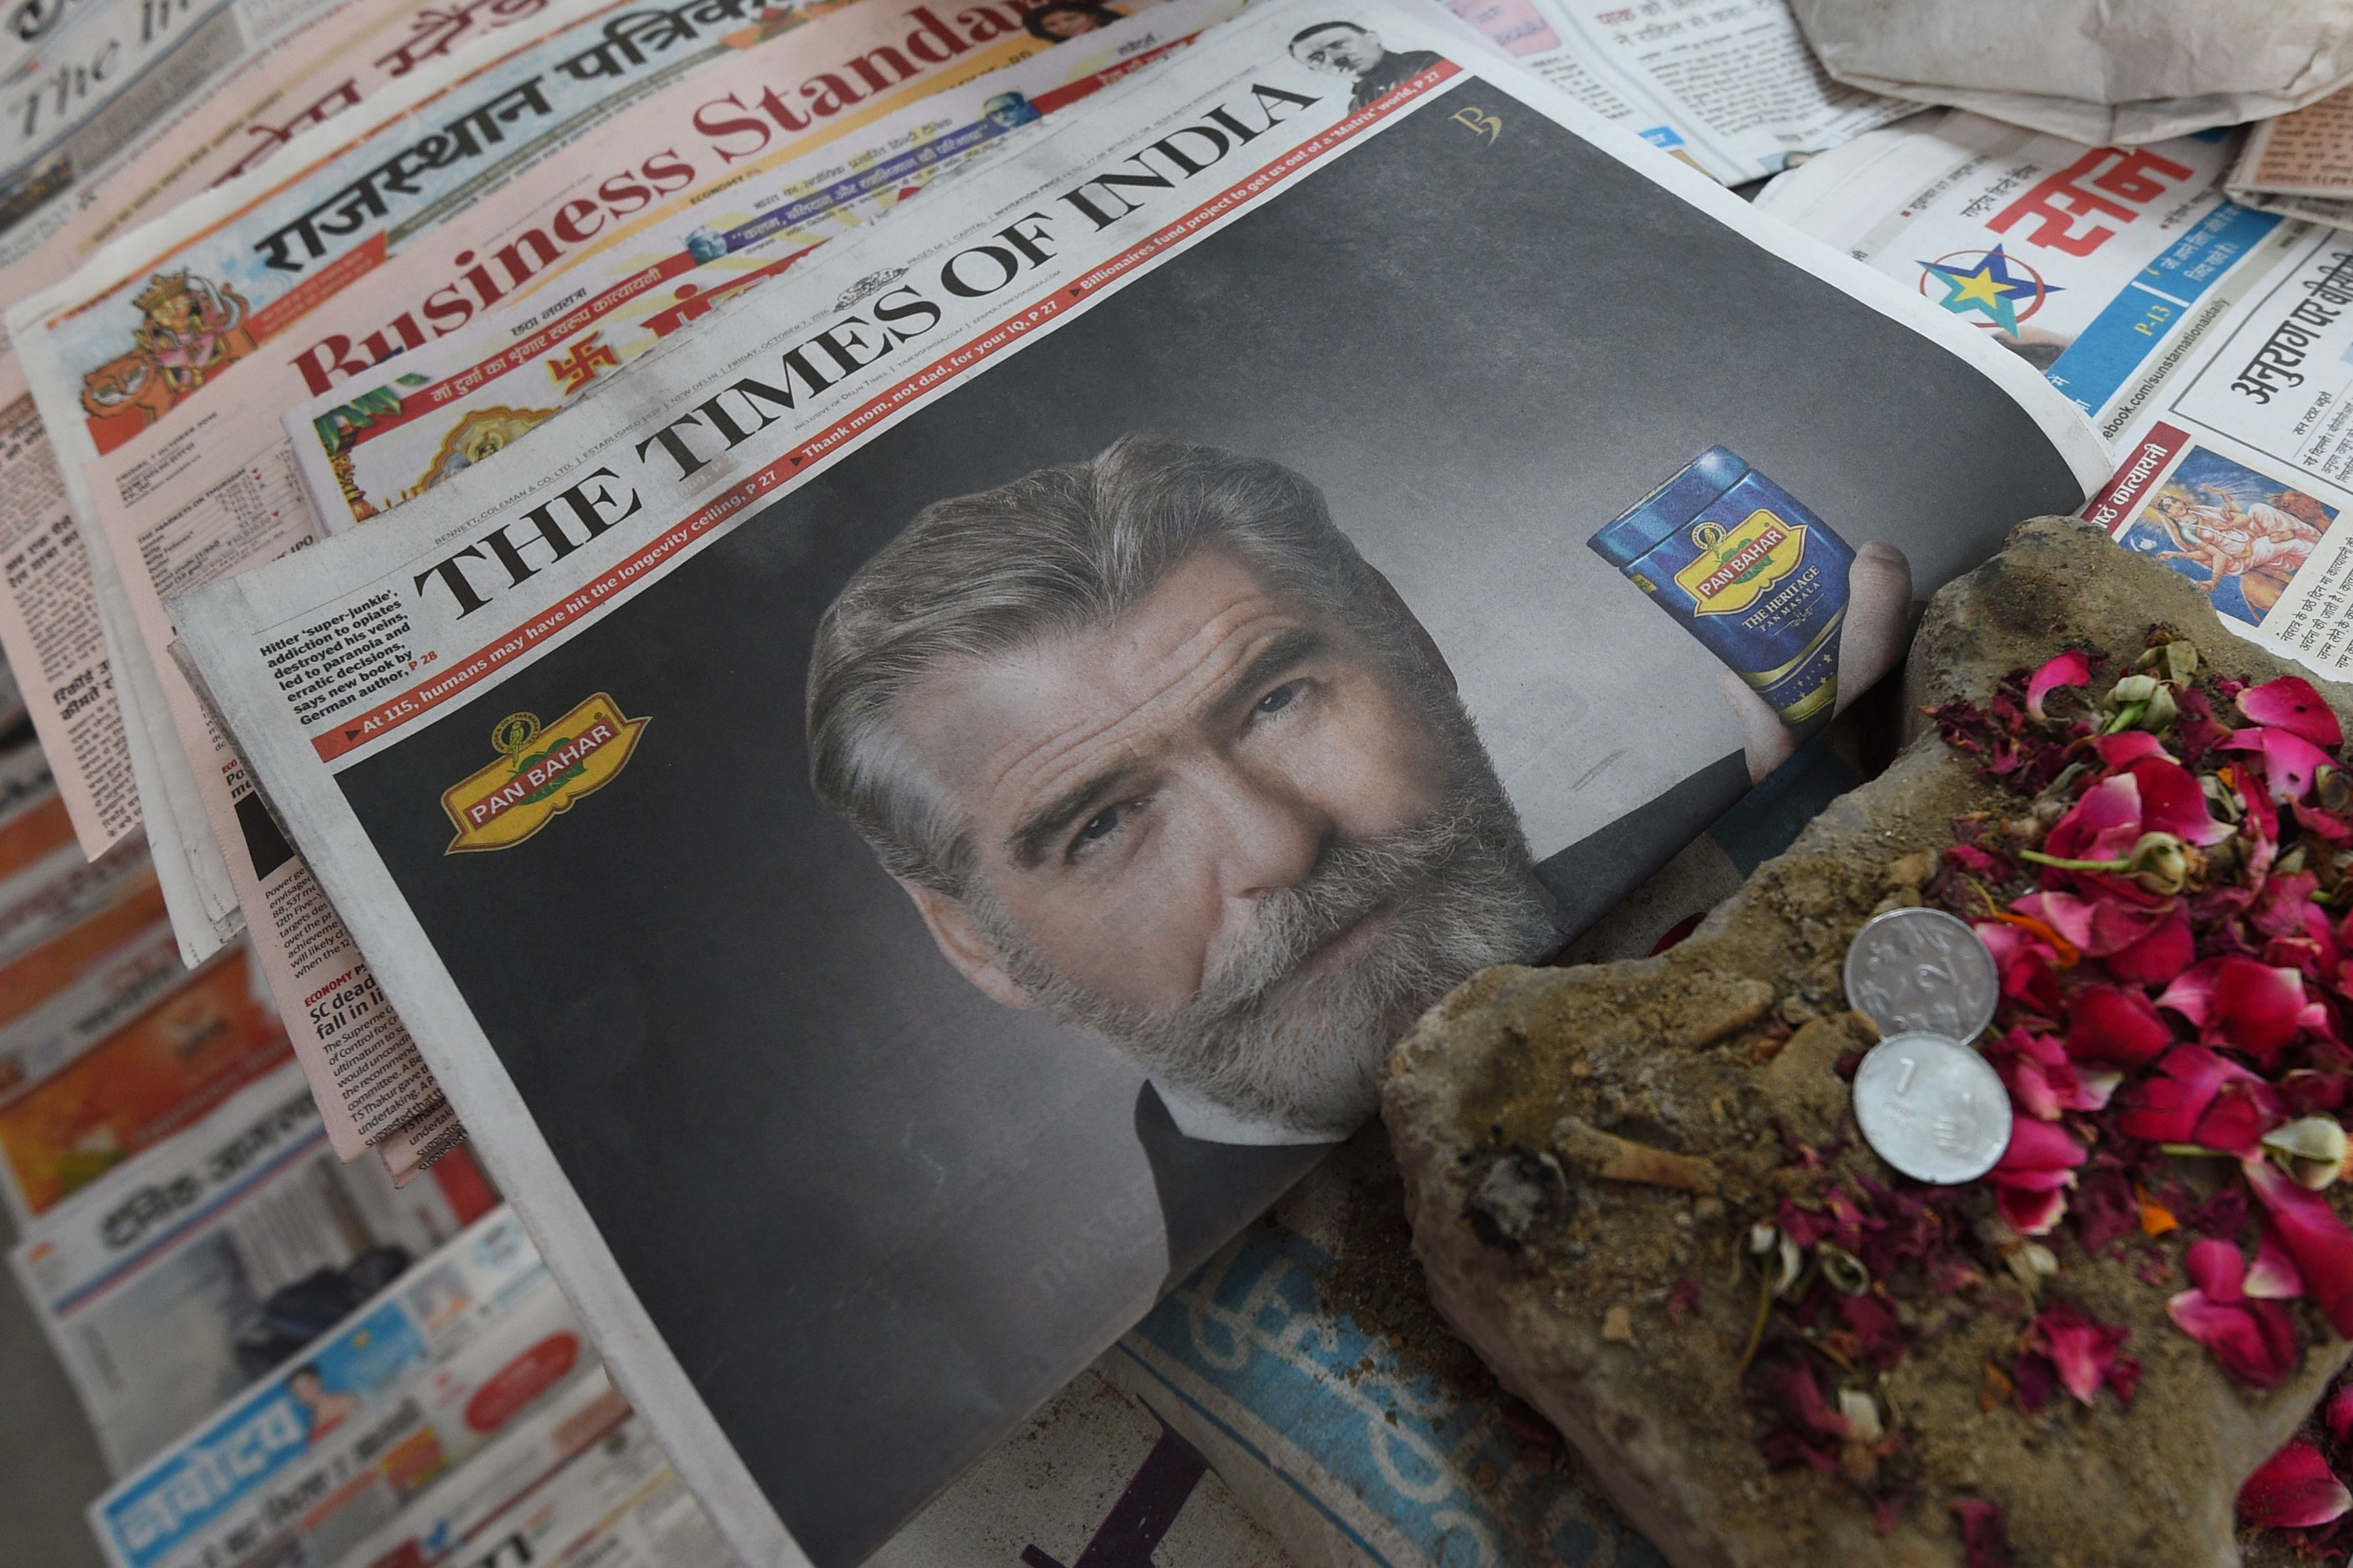 A newspaper with a front page advertisement of Pierce Brosnan endorsing an Indian mouth freshener, is seen on the streets of New Delhi on Oct. 7, 2016.